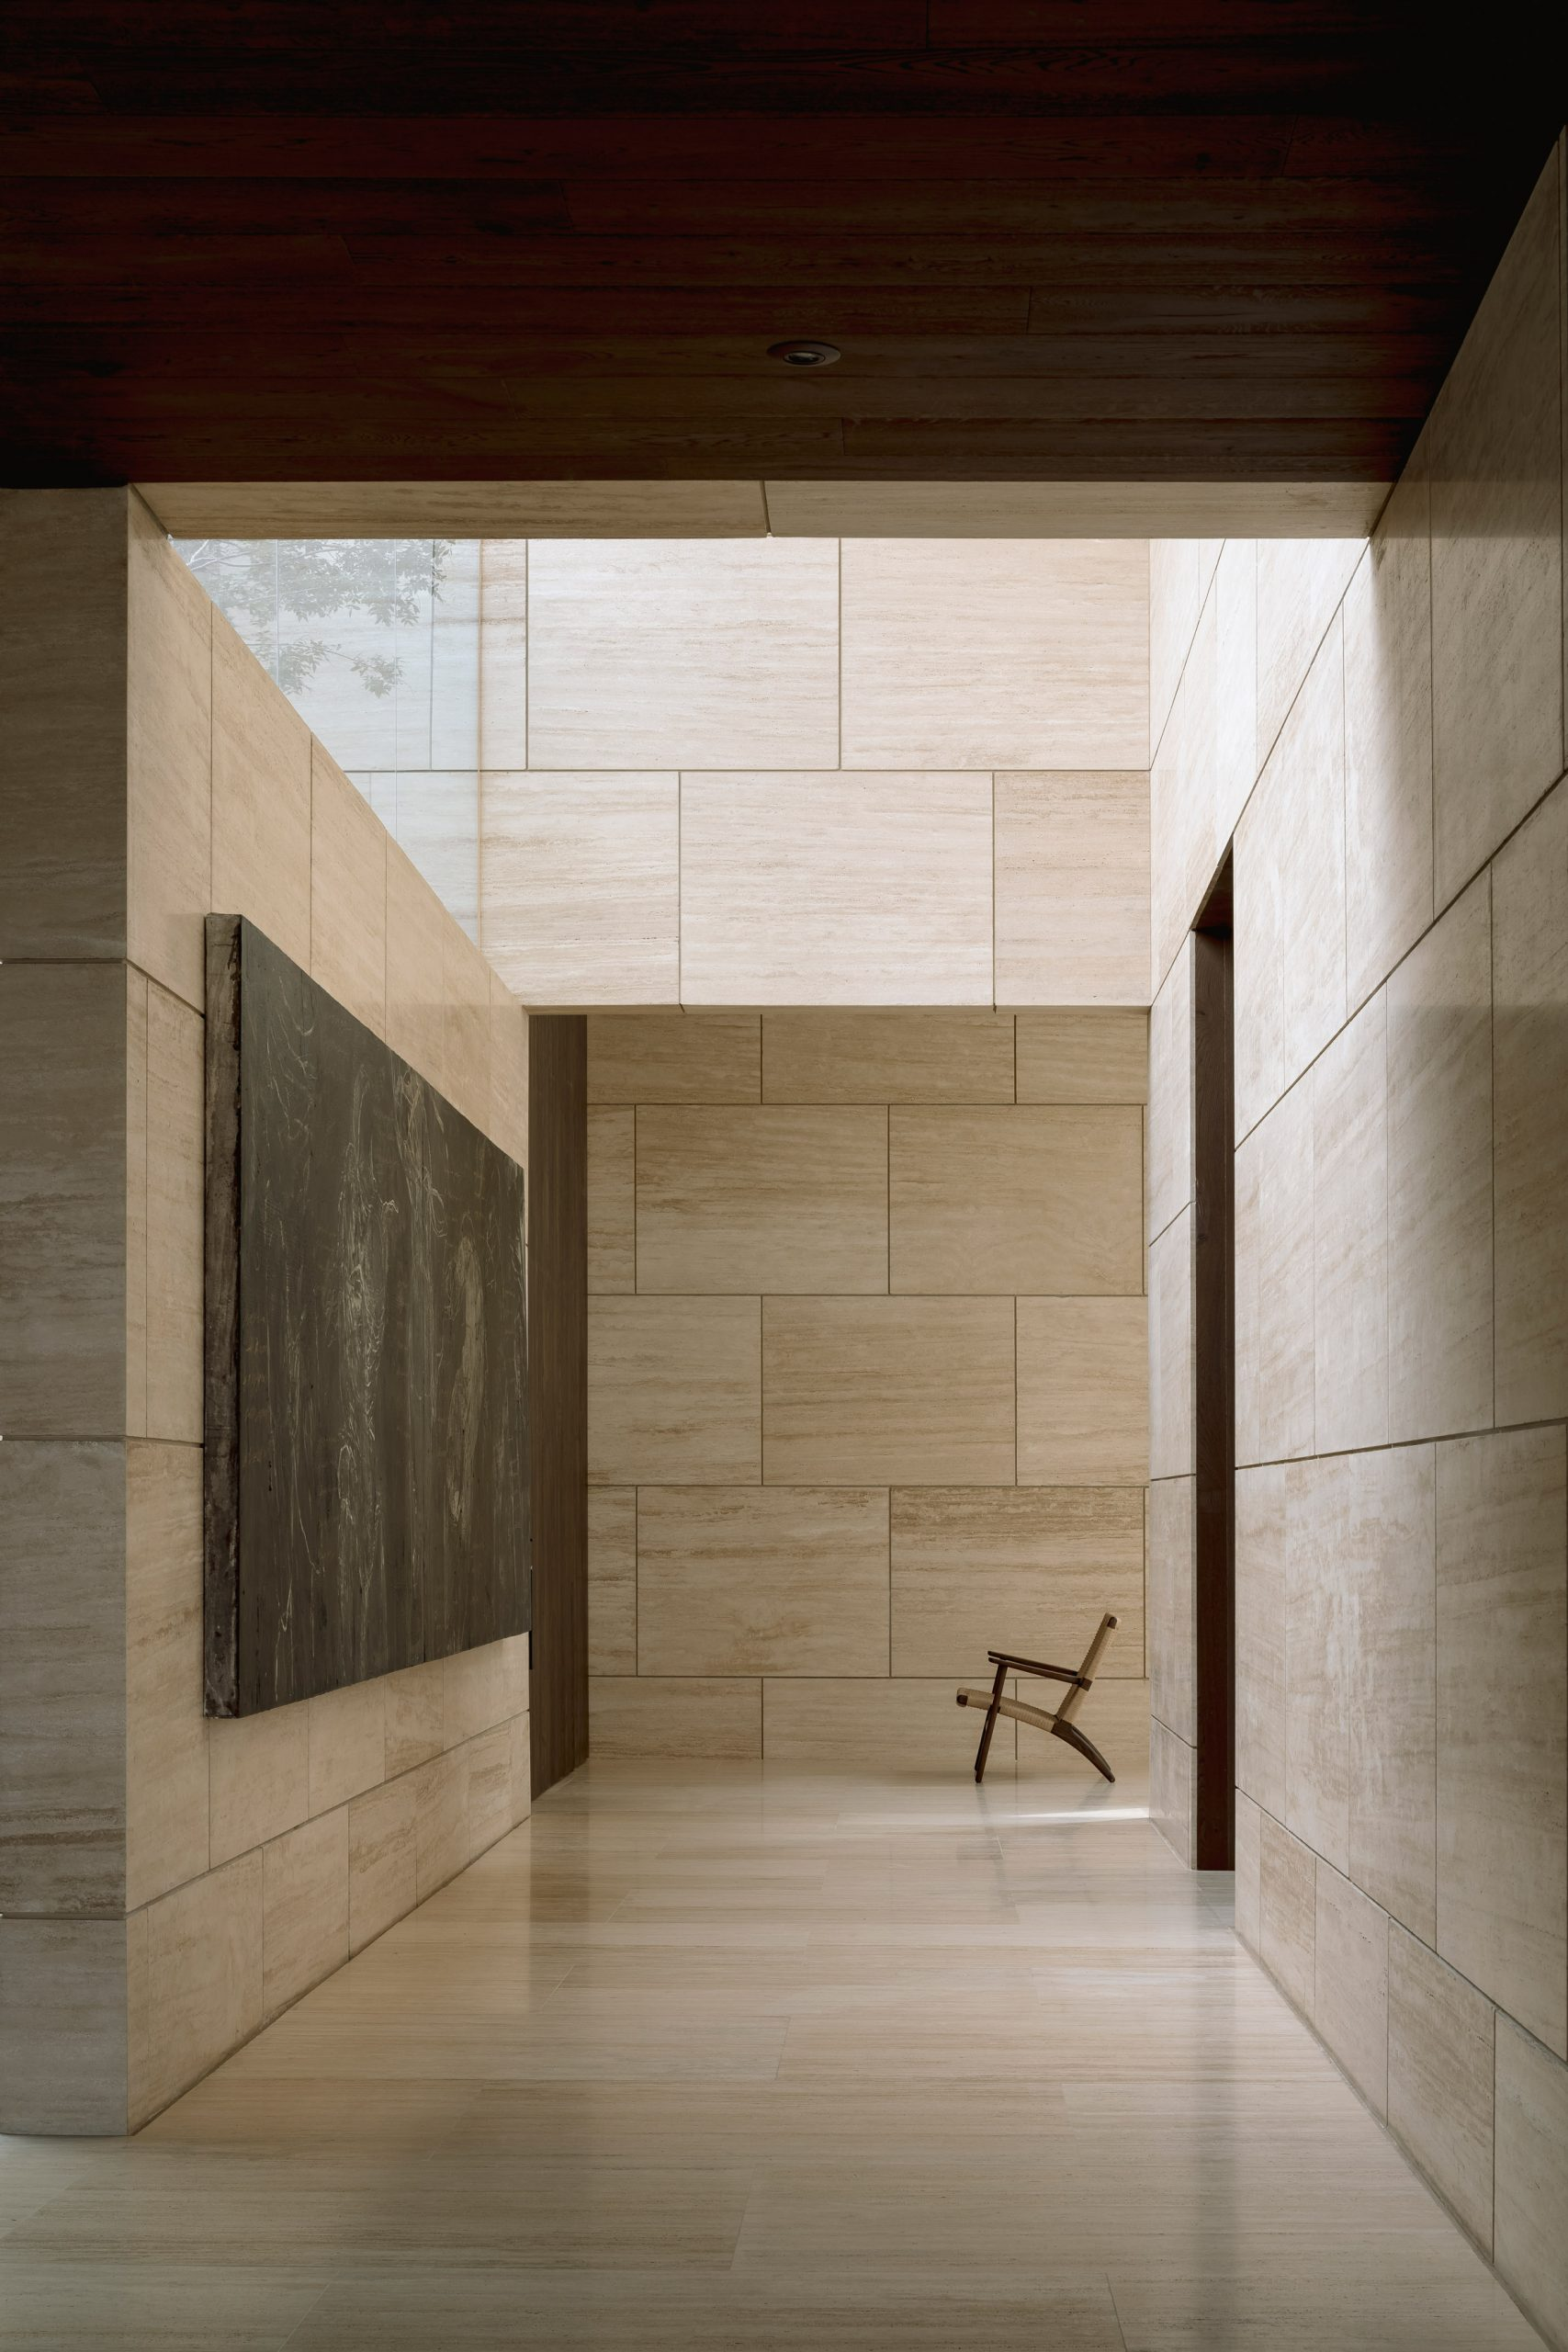 Interior corridor of marble-clad house in Mexico